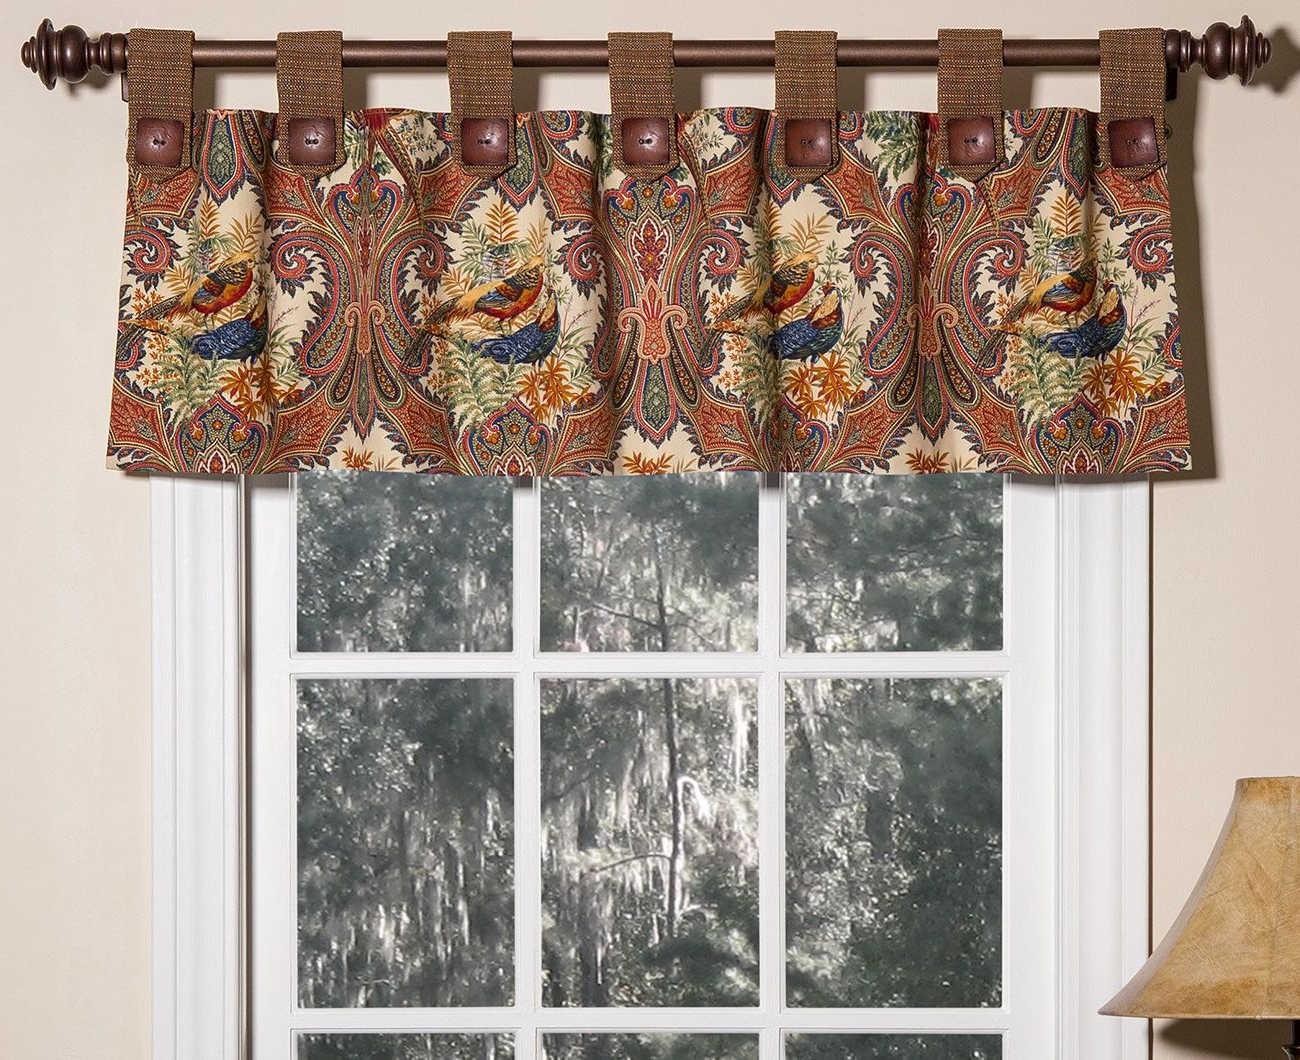 Widely Used Tailored Toppers With Valances With Tab Top Valance – Wilderness Royalthomasville (View 14 of 20)